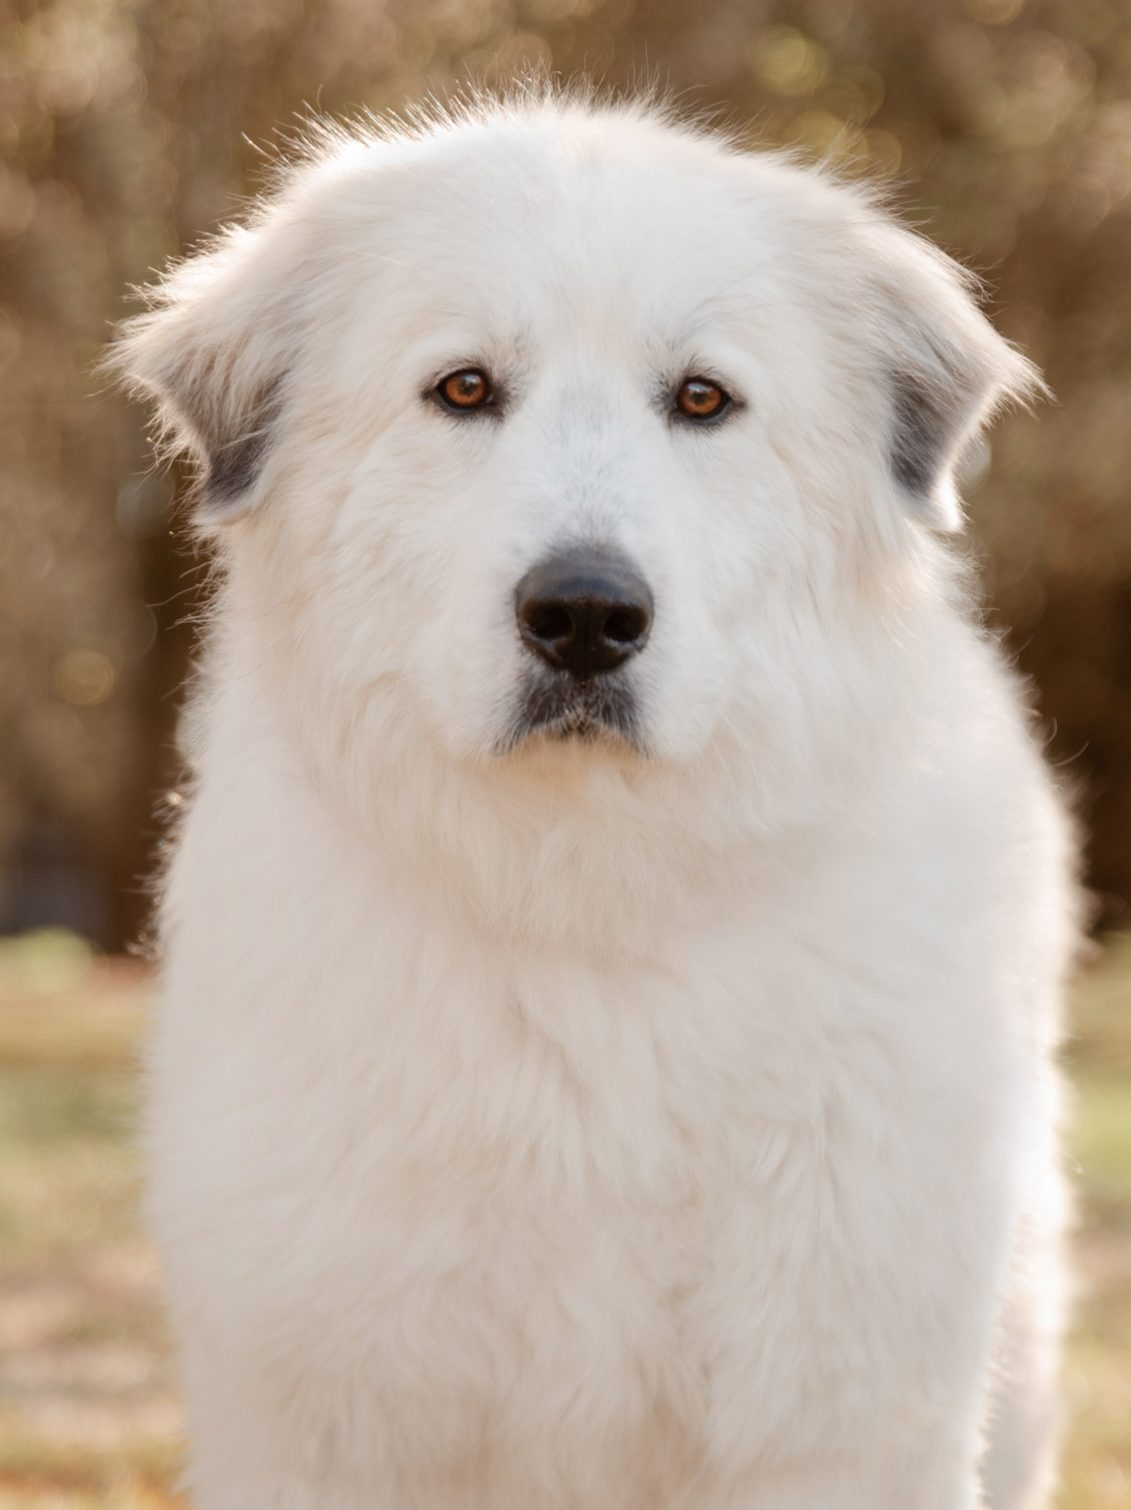 Great Pyrenees dog from Madison Georgia